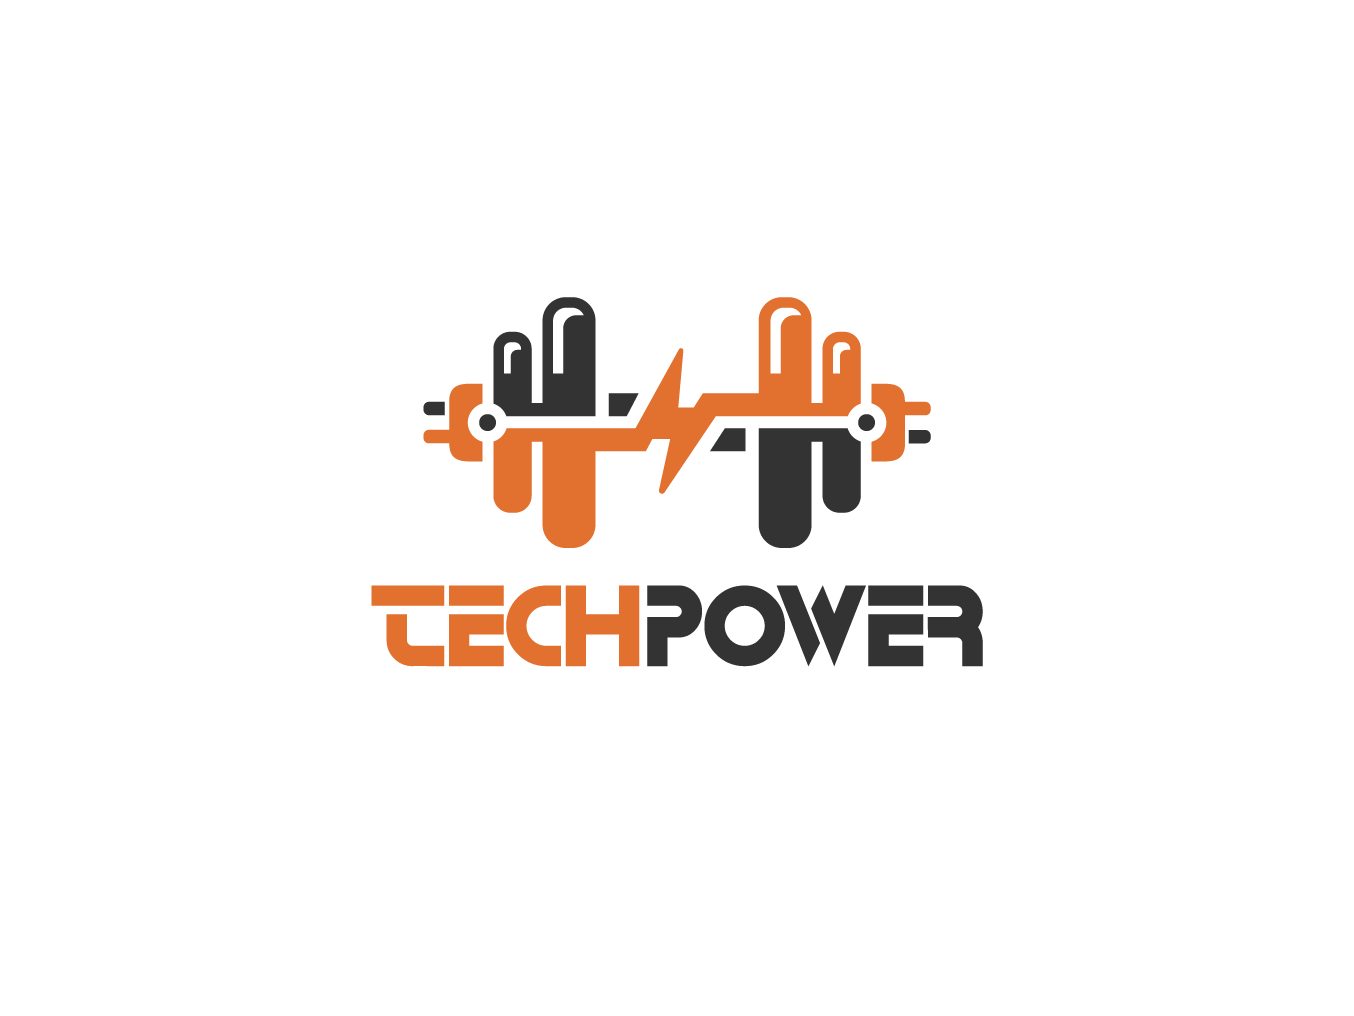 Logo Design - Tech Power weight strong logos technology design logo design logo training data sport application computing tech software fitness dumbbell gym